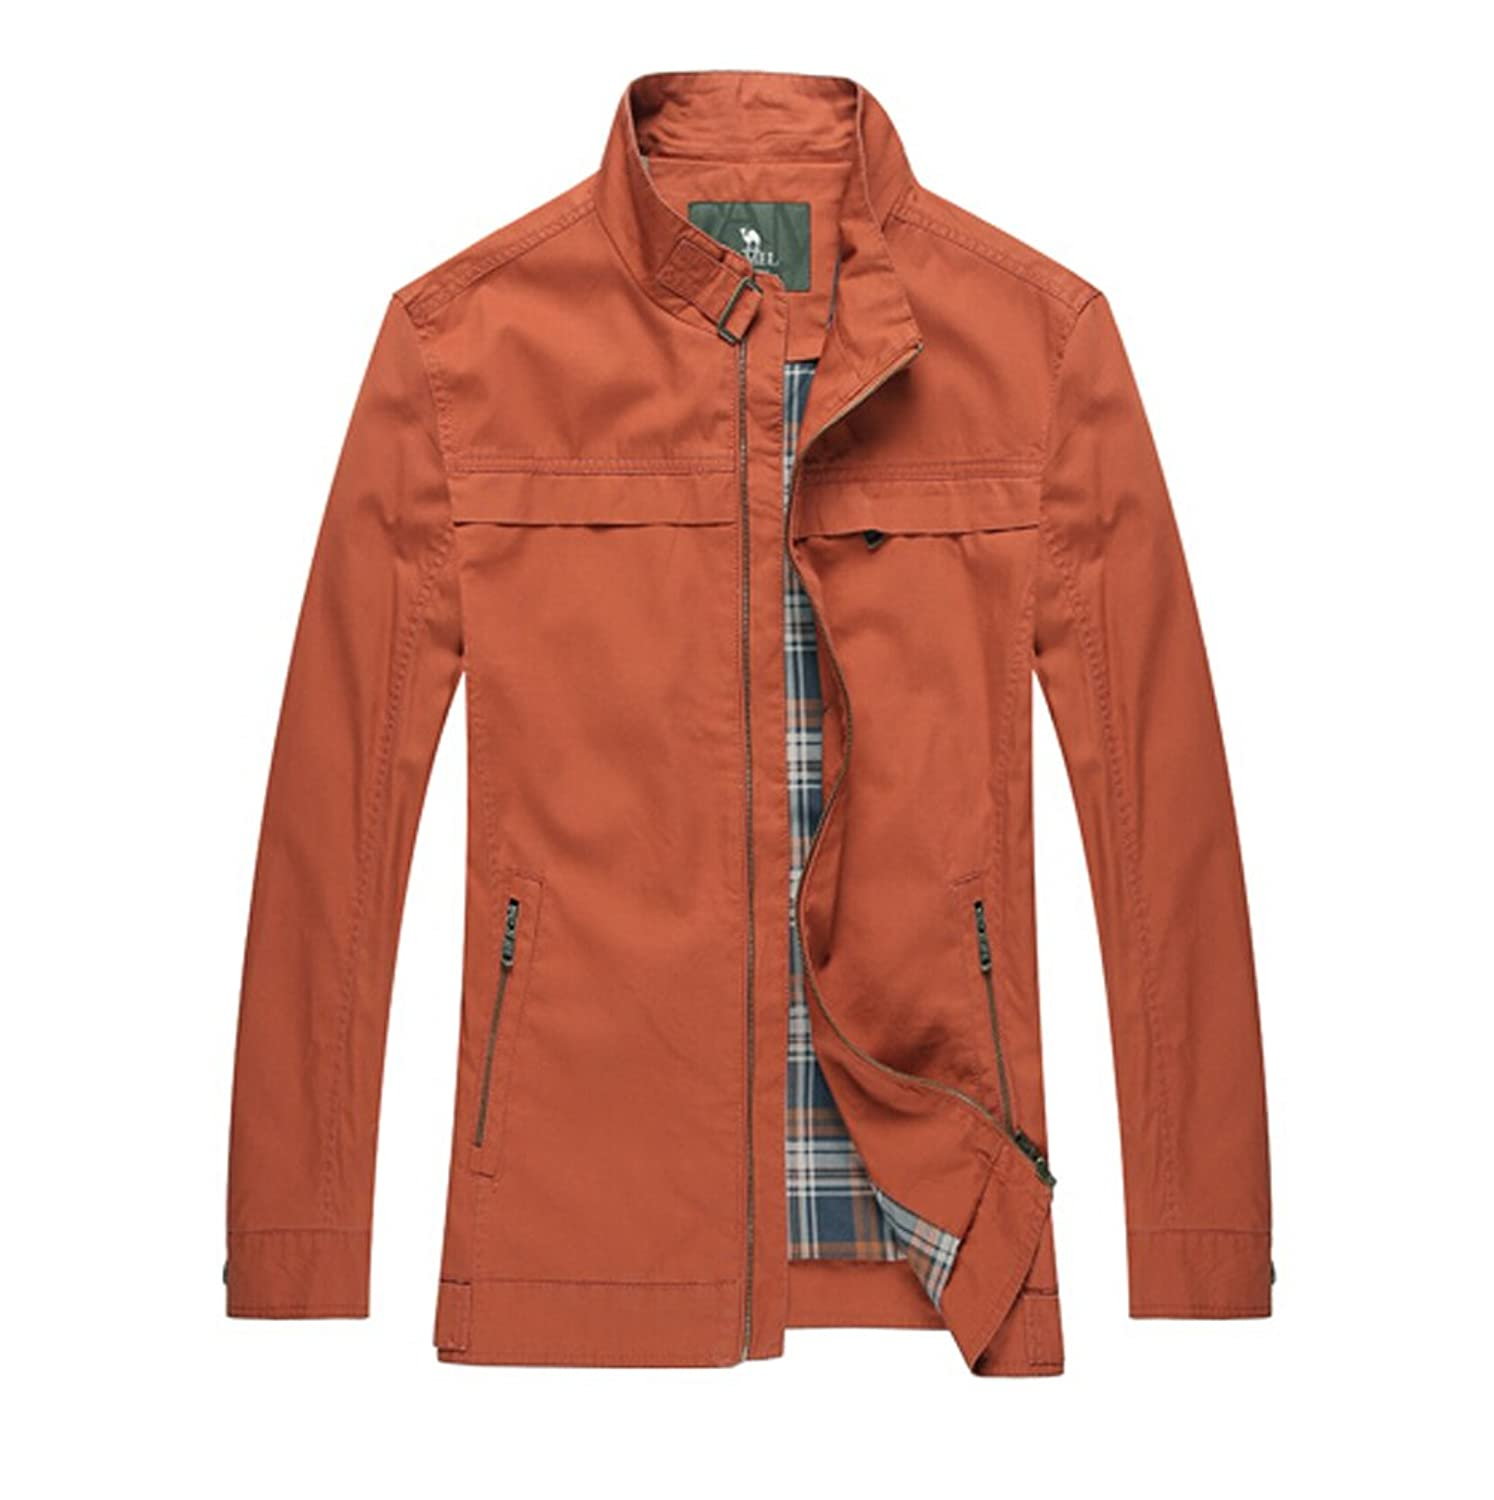 Camel Men's Fashion Casual Stand Collar Cotton Jacket Lightweight Zipper Coat